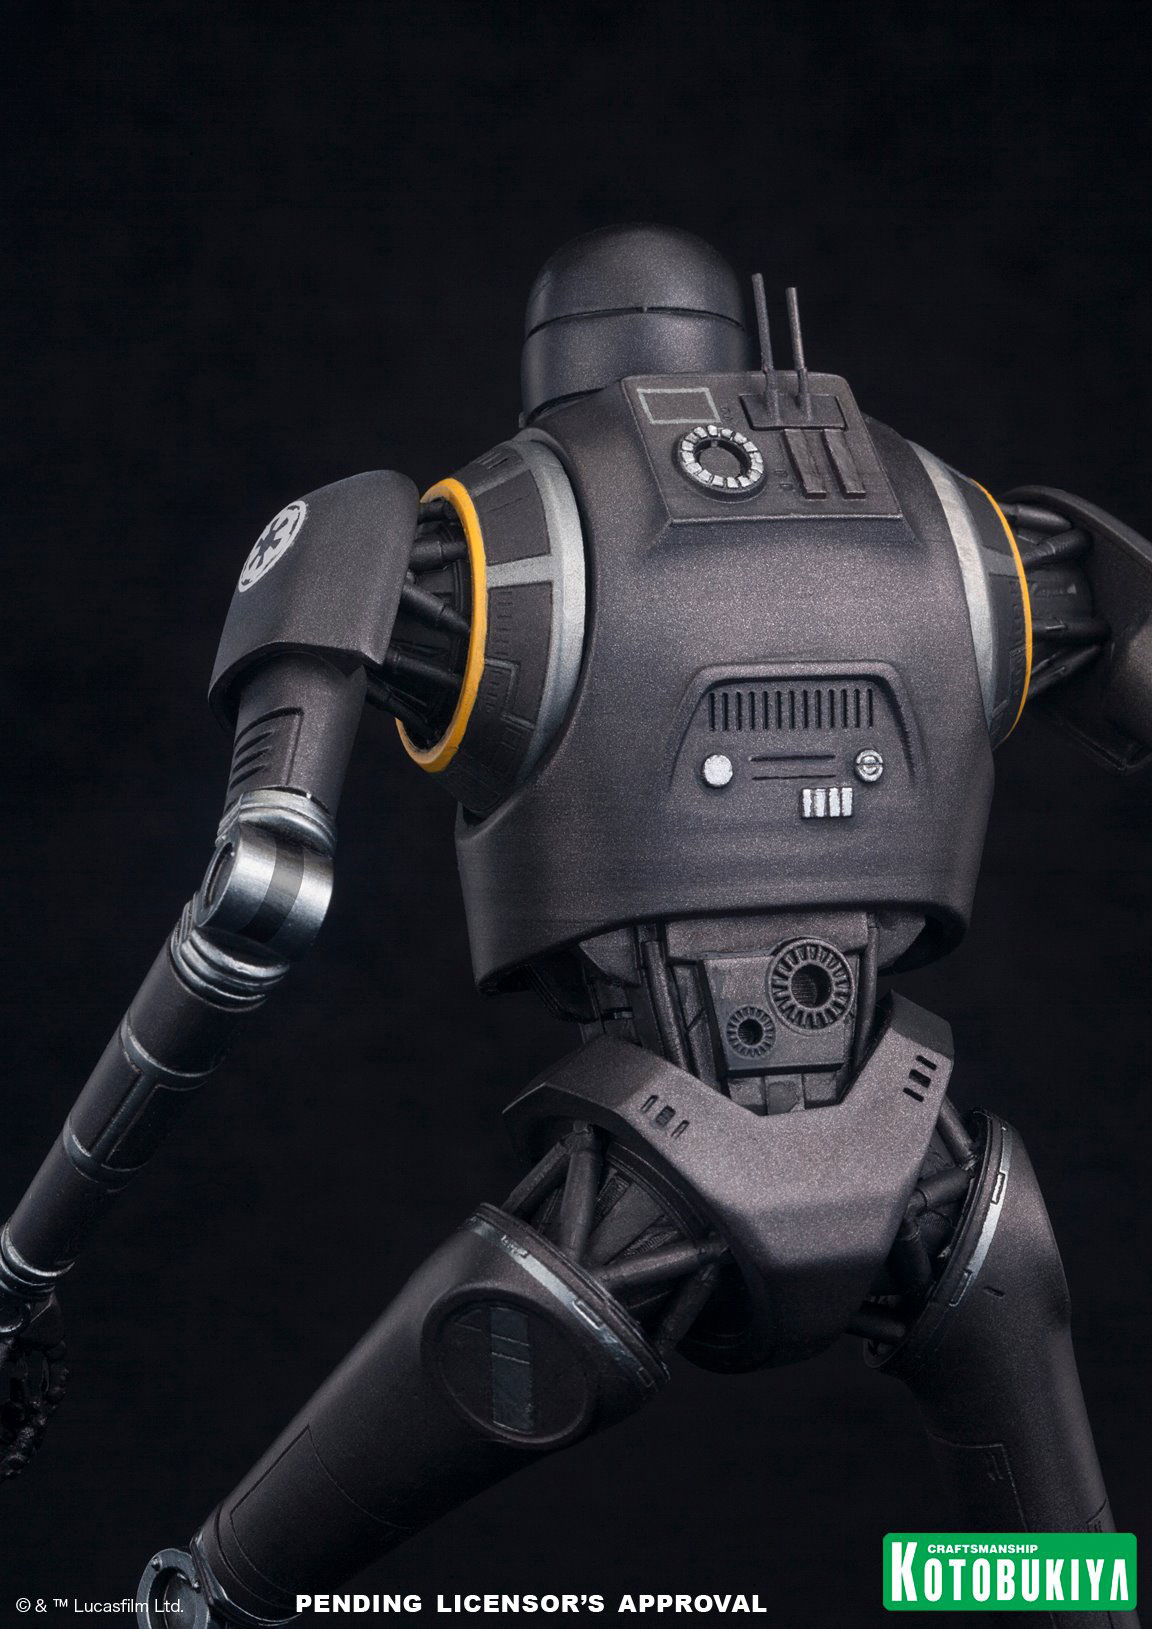 kotobukiya-star-wars-rogue-one-k-2so-artfx-statue-7